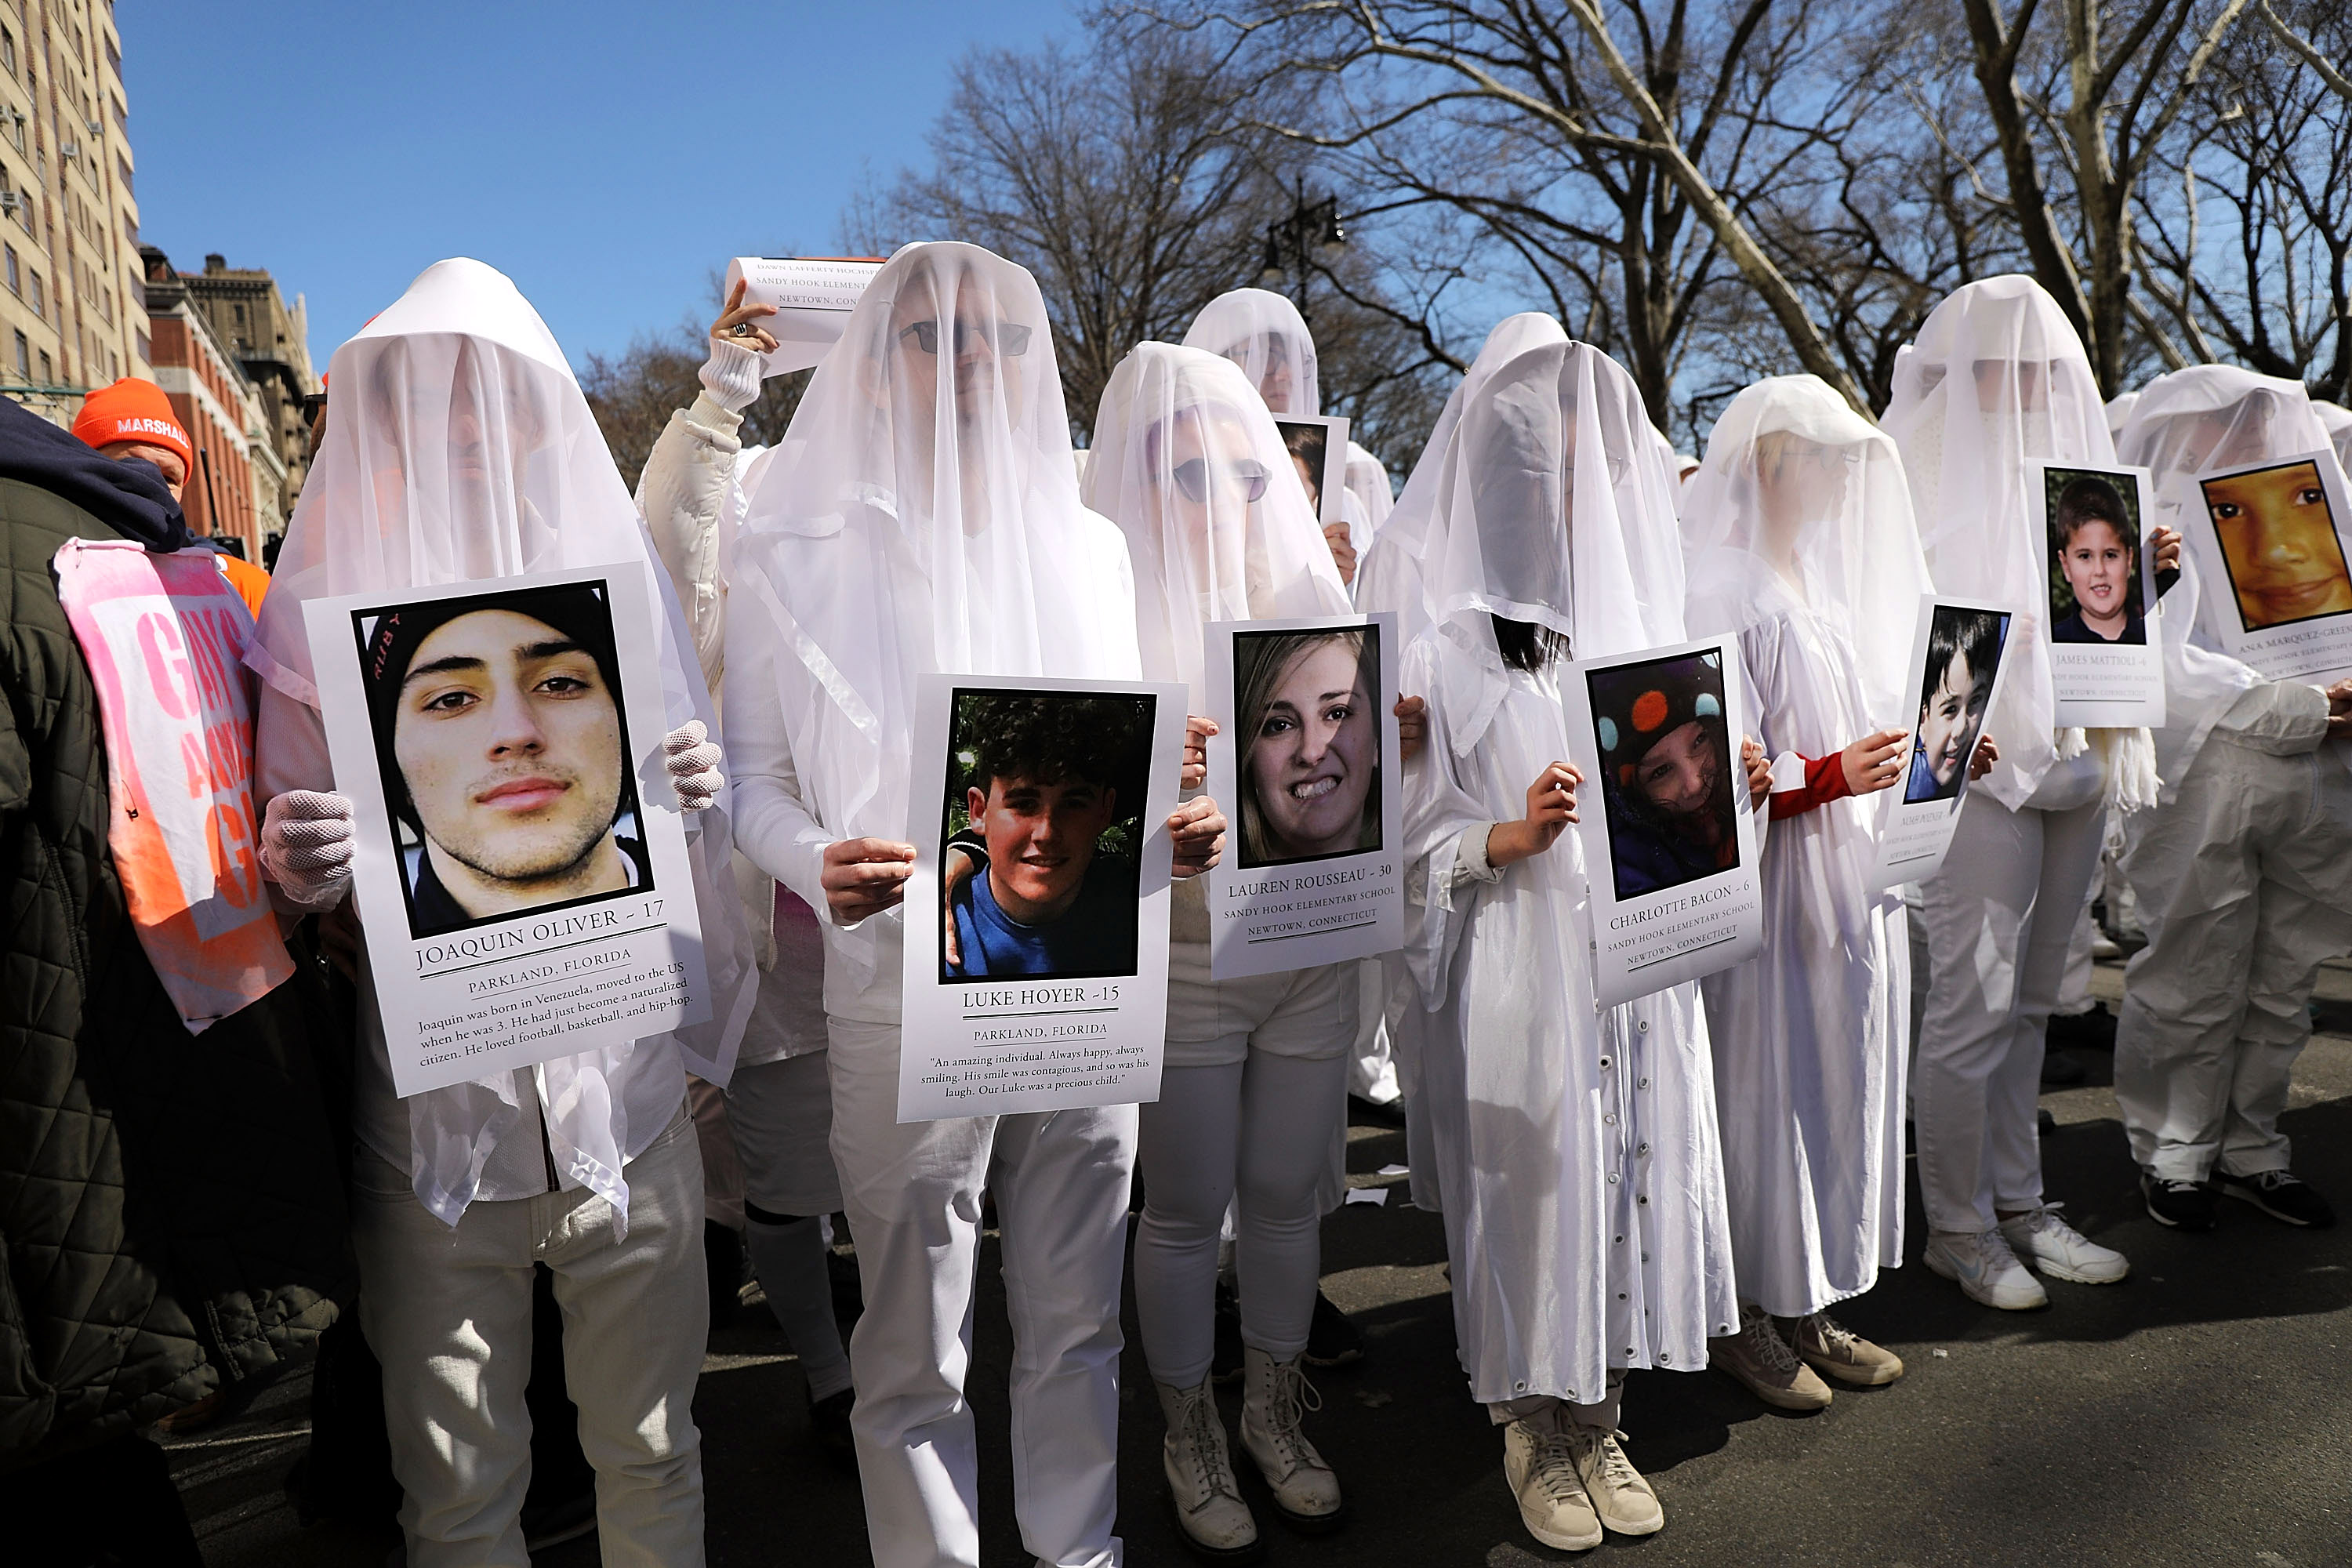 <div class='meta'><div class='origin-logo' data-origin='none'></div><span class='caption-text' data-credit='Getty Spencer Platt/Getty Images'>Holding pictures of victims killed in gun violence, thousands of people, many of them students, march against gun violence in Manhattan.</span></div>